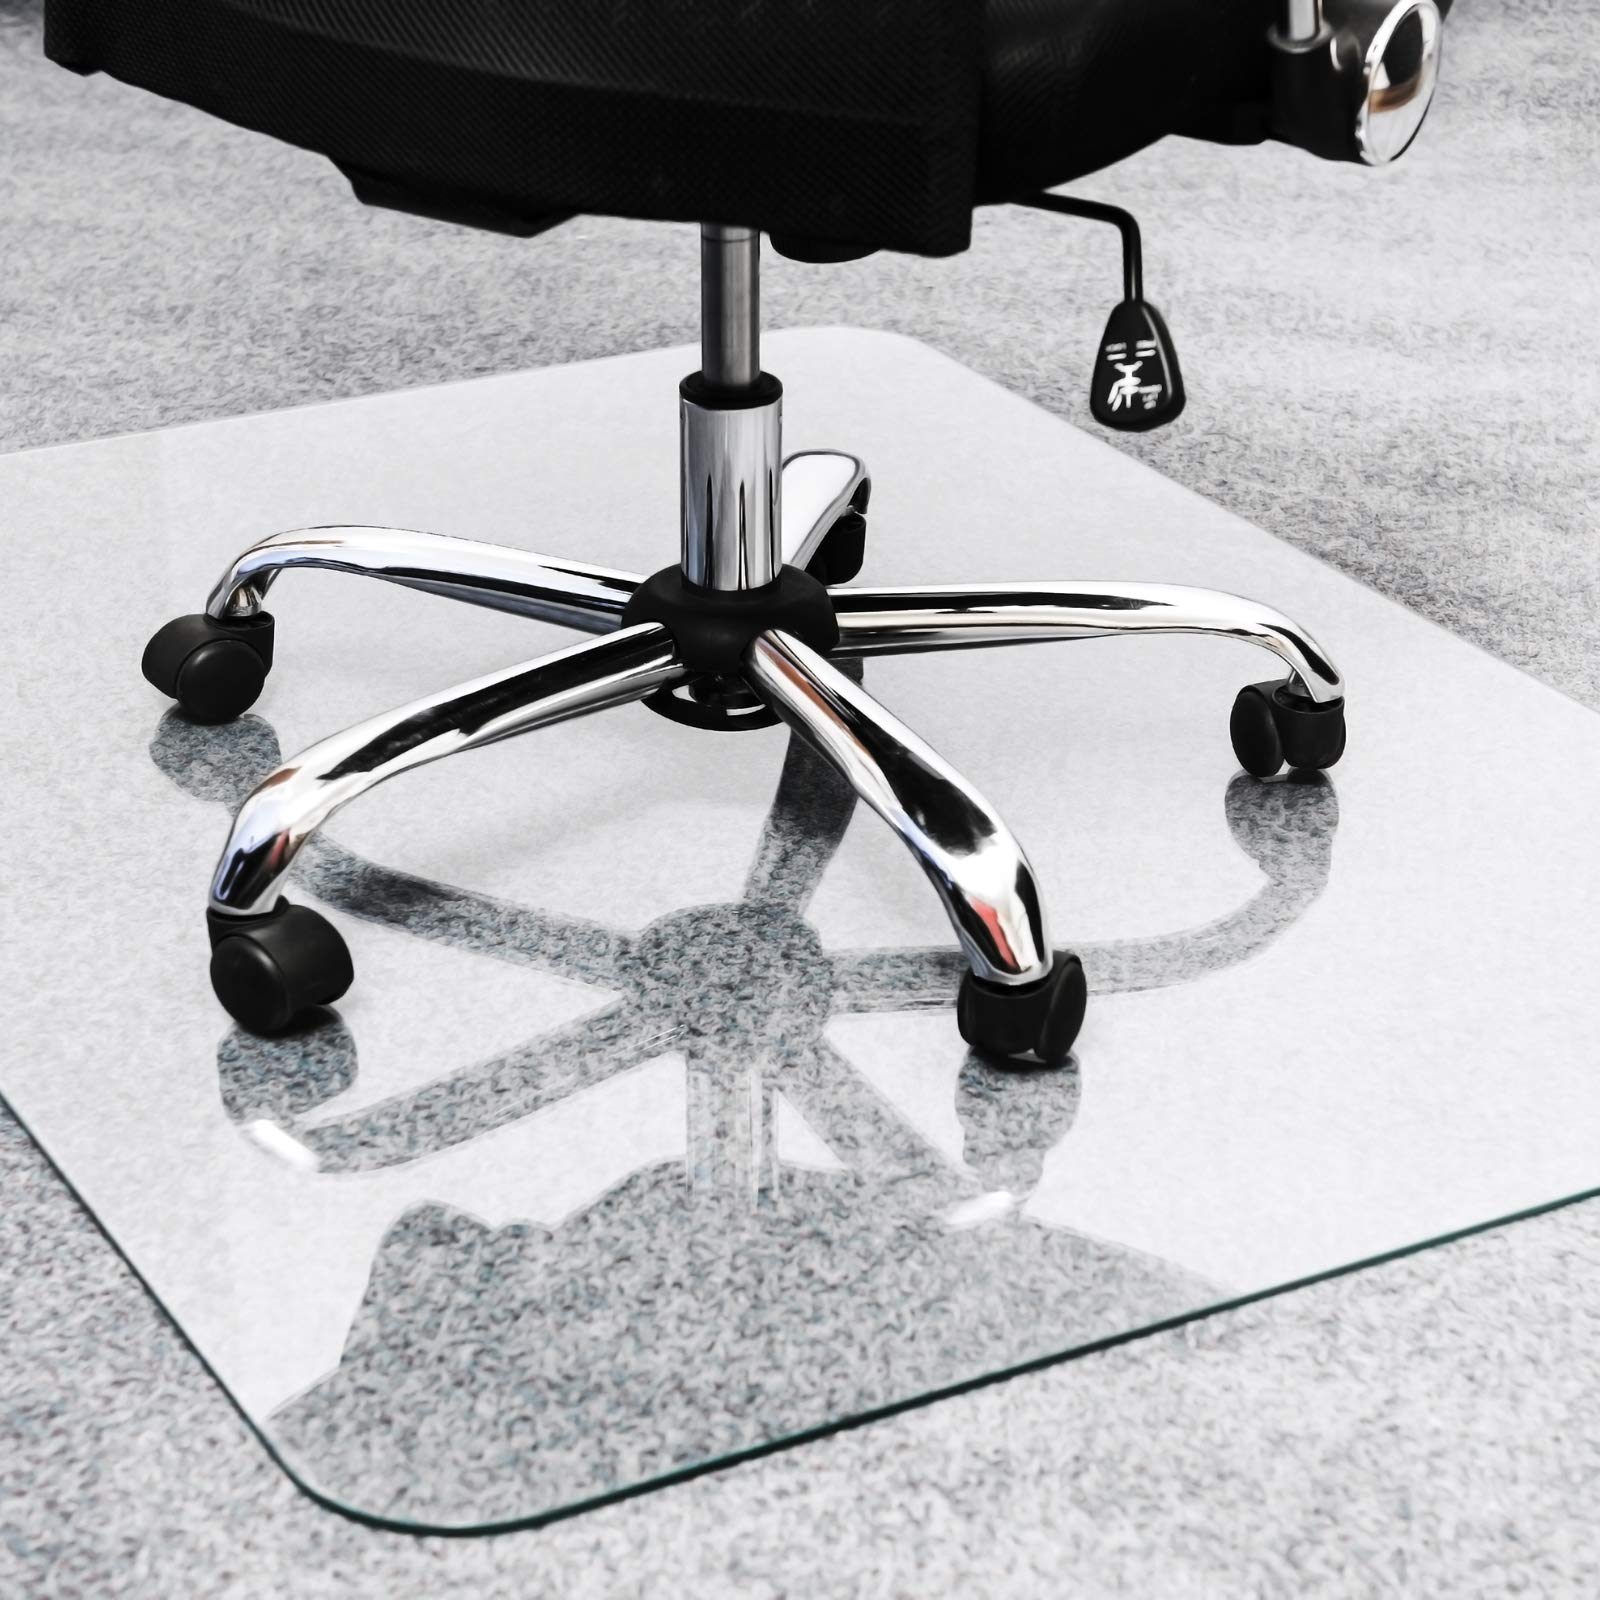 Floortex Cleartex Glaciermat, Reinforced Glass Executive Chair Mat for Hard Floors and All Pile Carpets, 36'' x 48'', Crystal Clear (FC123648EG) by Floortex (Image #4)